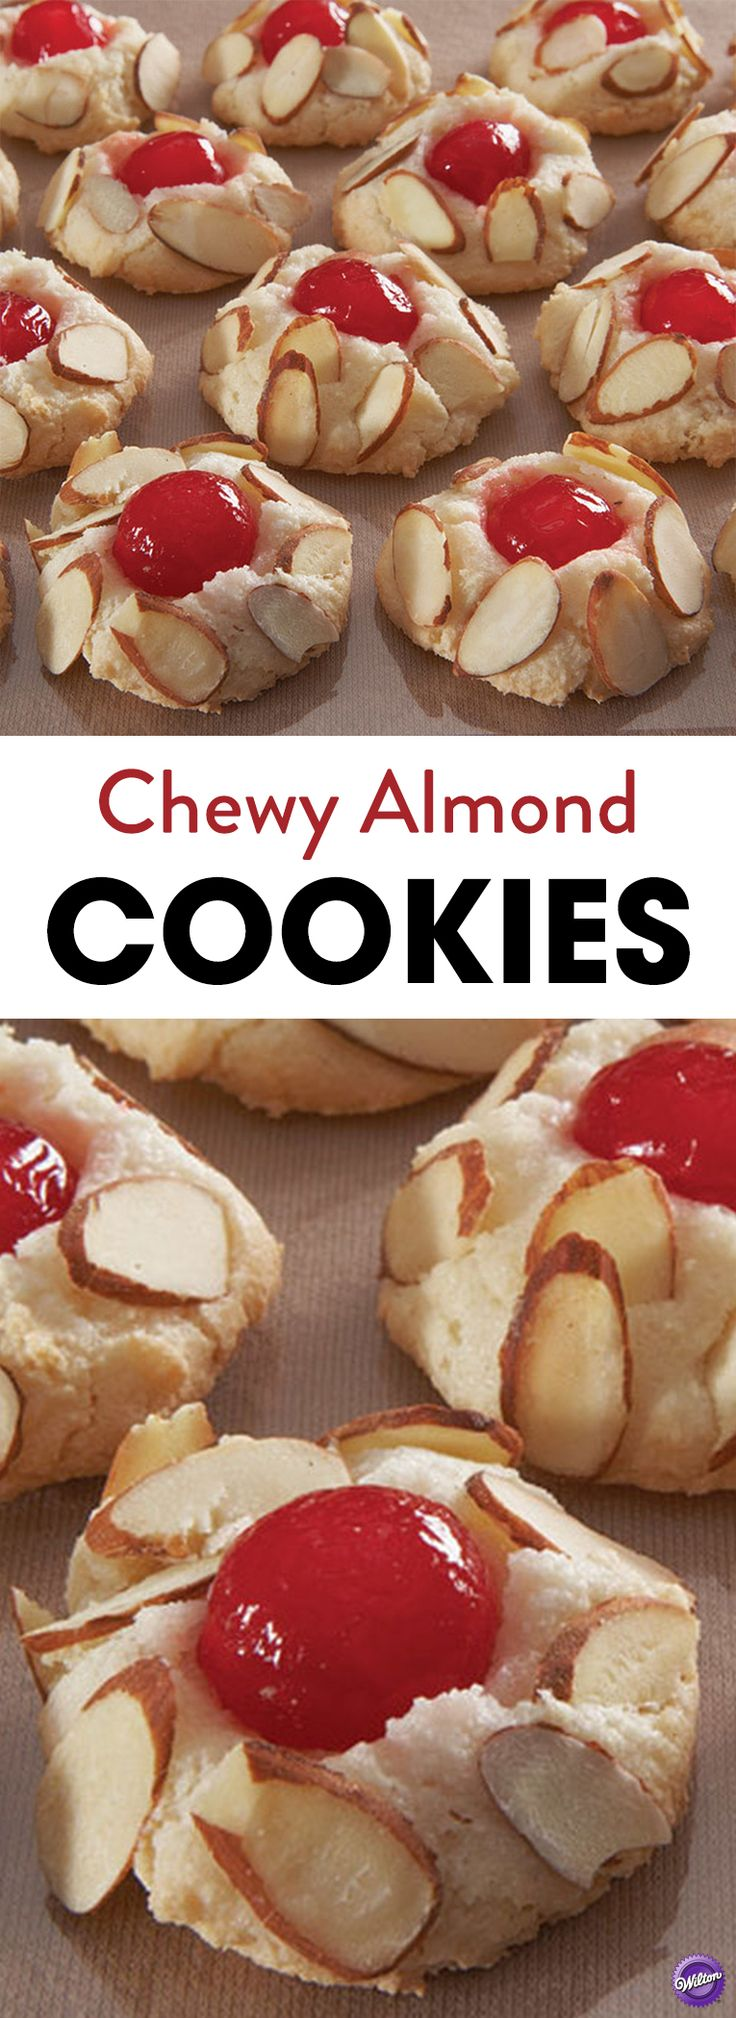 These soft and chewy almond cookies are so easy to make and are perfect to serve at any party or for afternoon snacks. Press a cherry half in the middle for a more delightful taste!